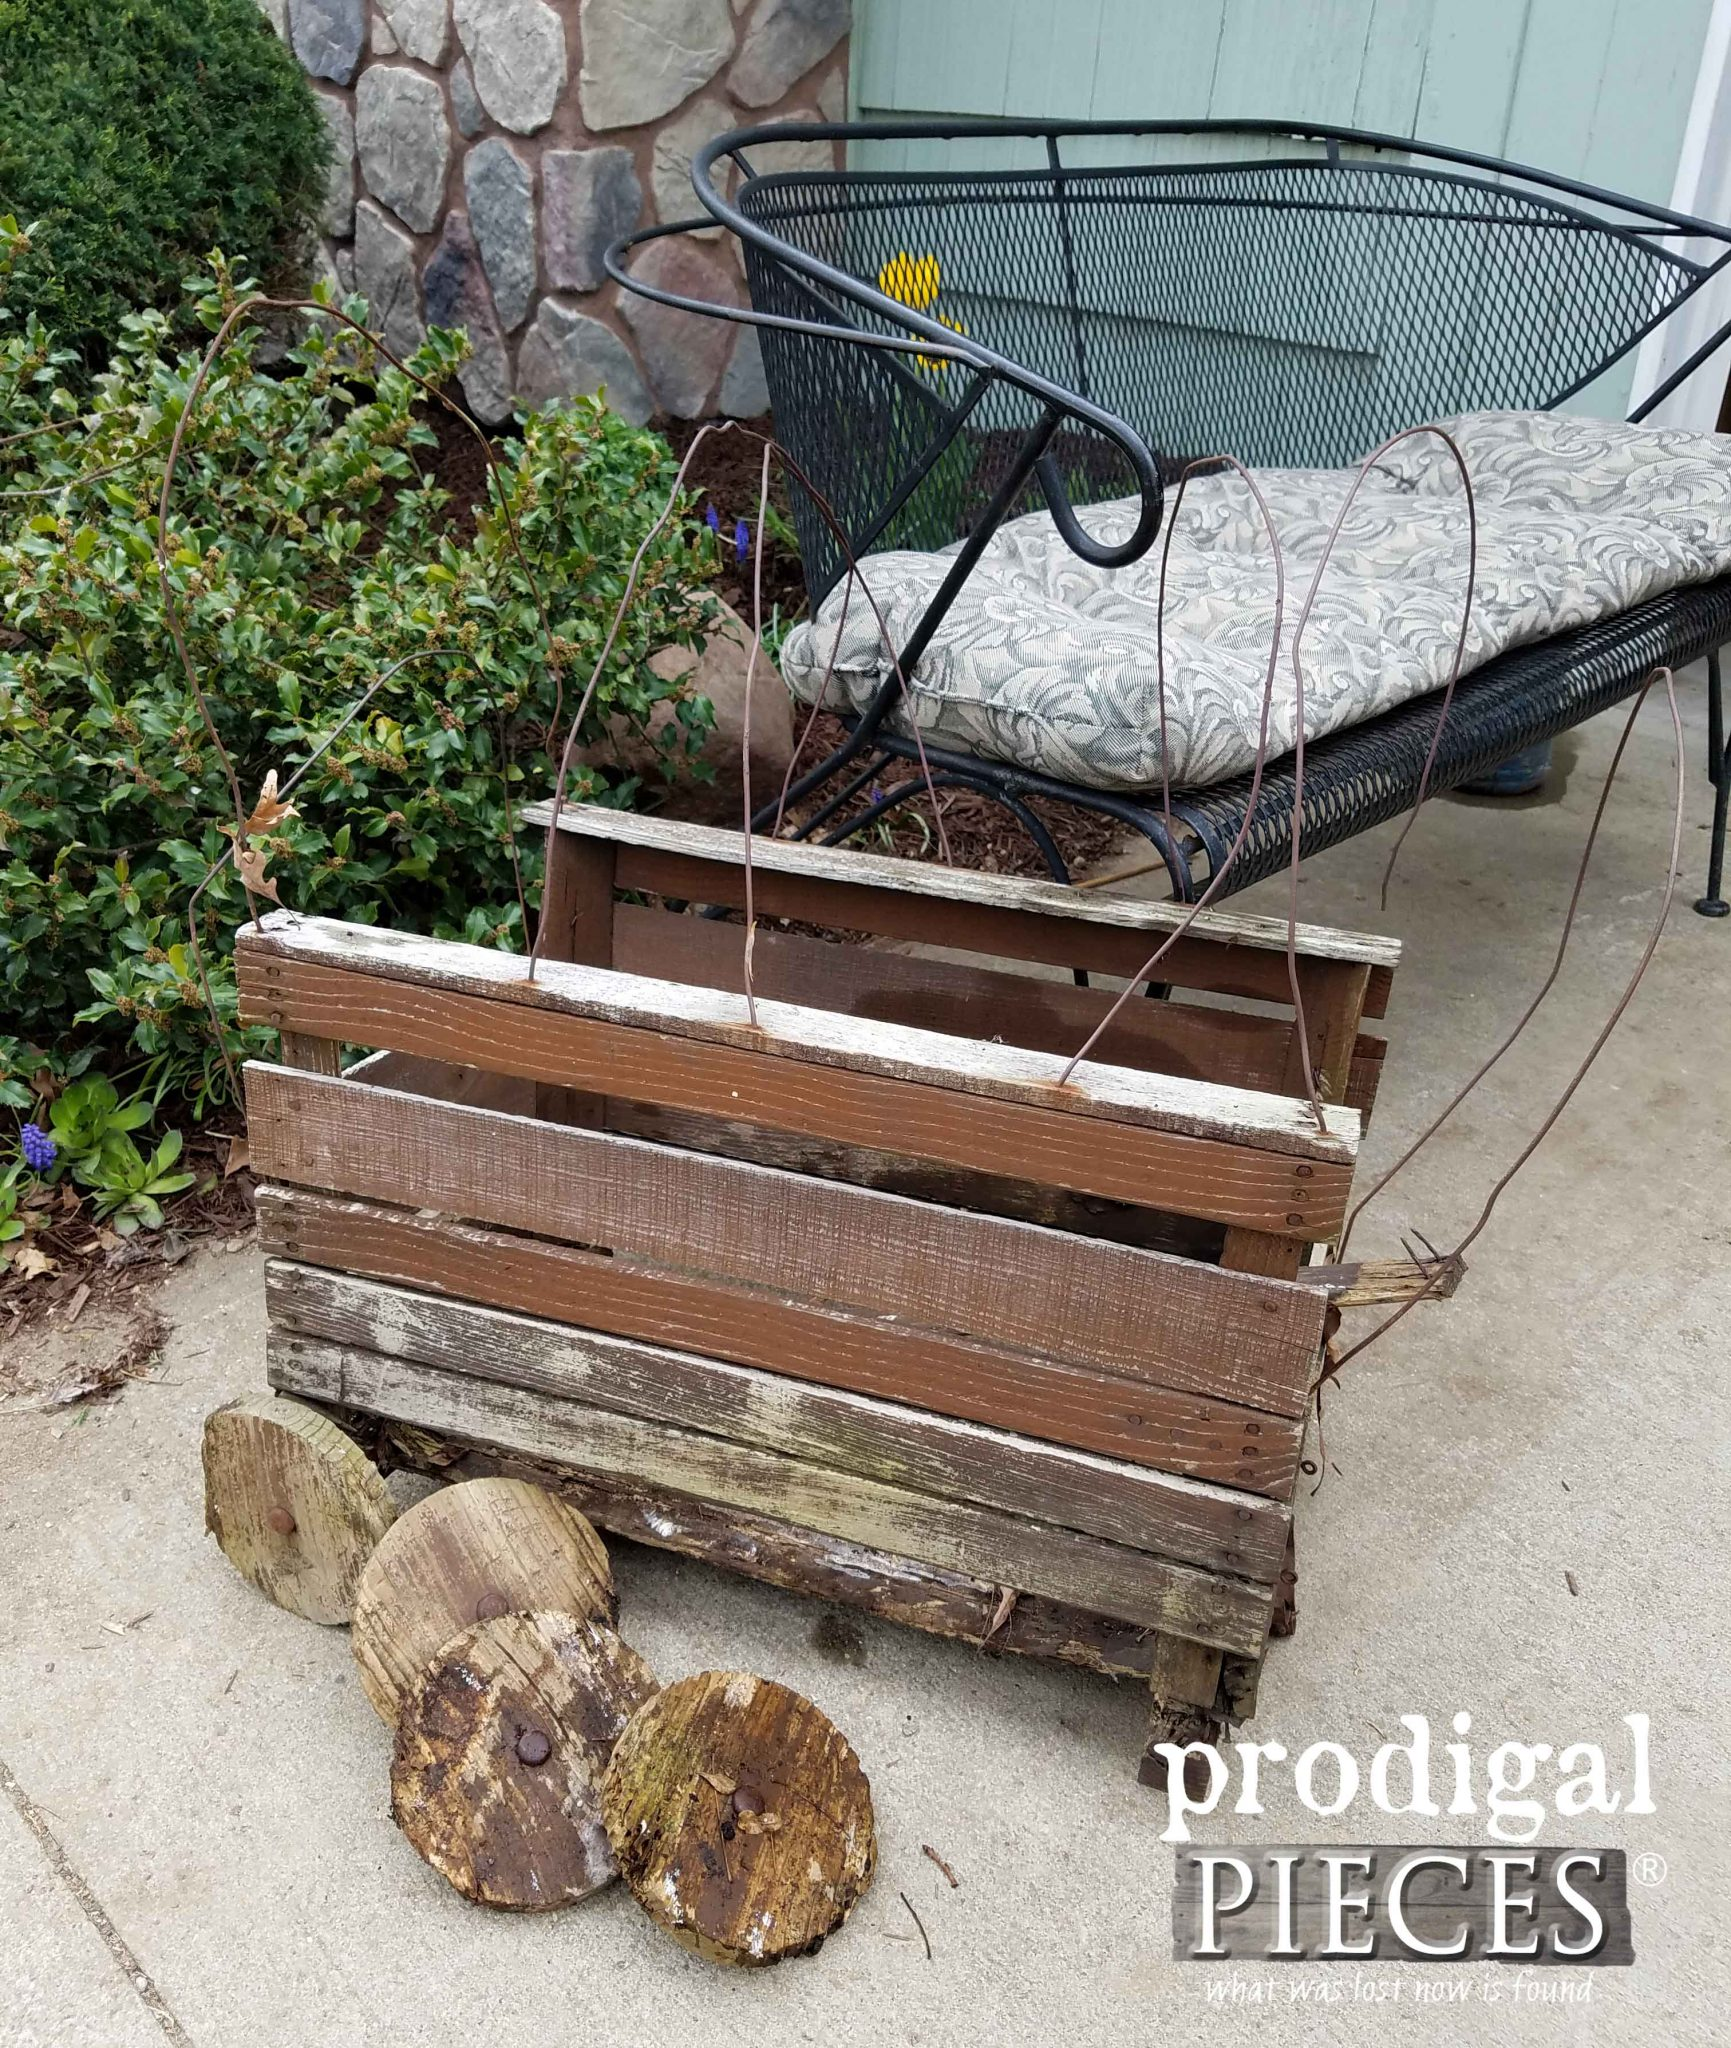 Busted Up Wooden Wagon as Inspiration | Prodigal Pieces | prodigalpieces.com